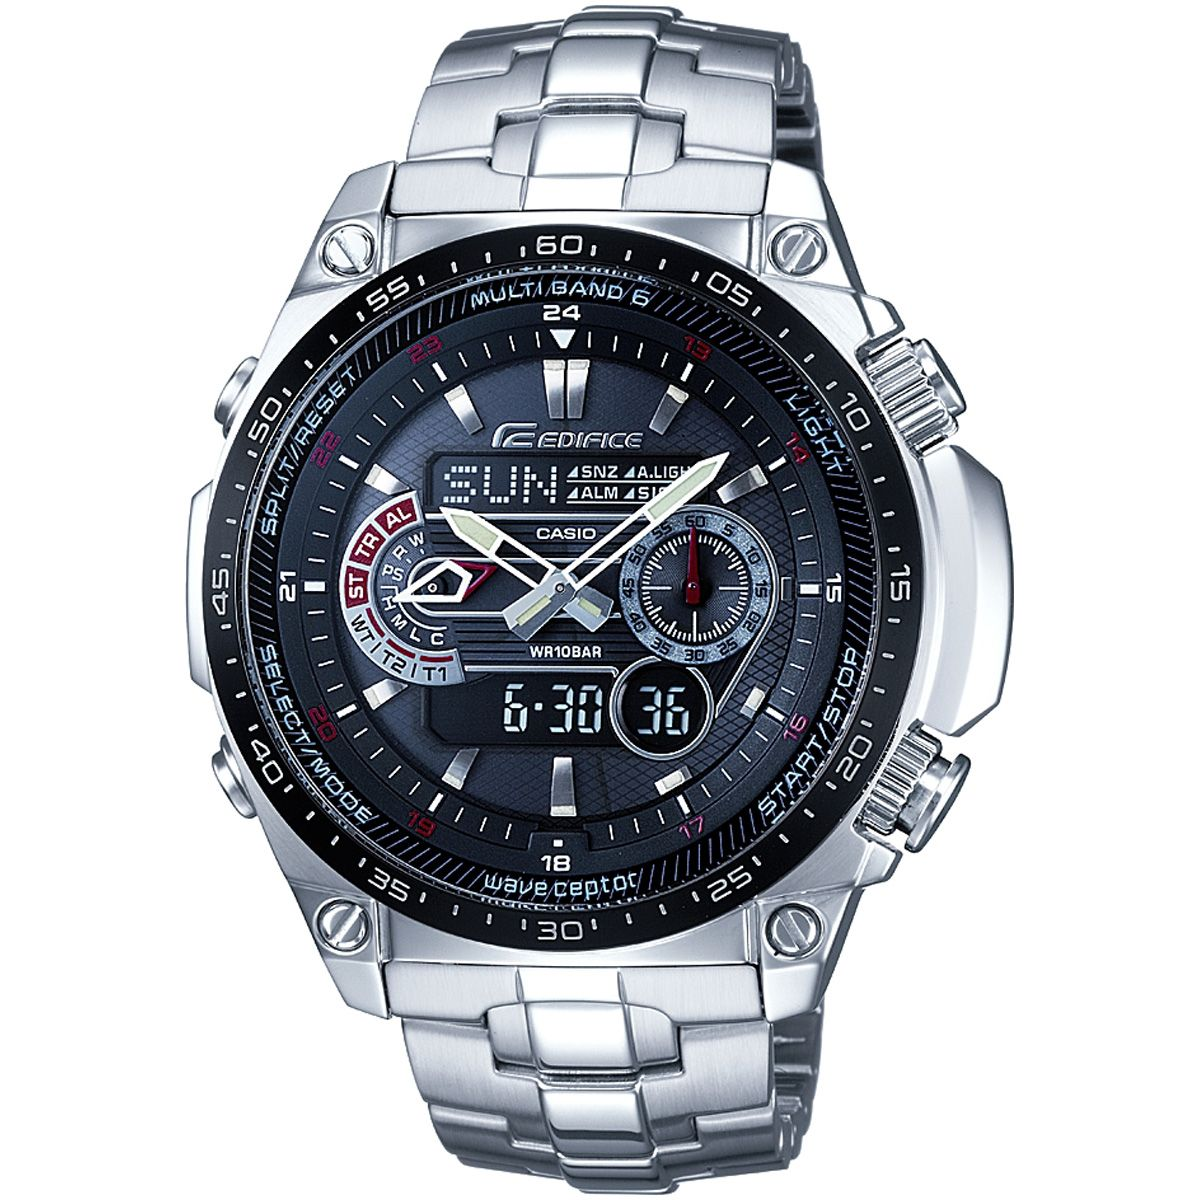 Outlet Best Sellers casio montre edifice, Noir Femme  5X350